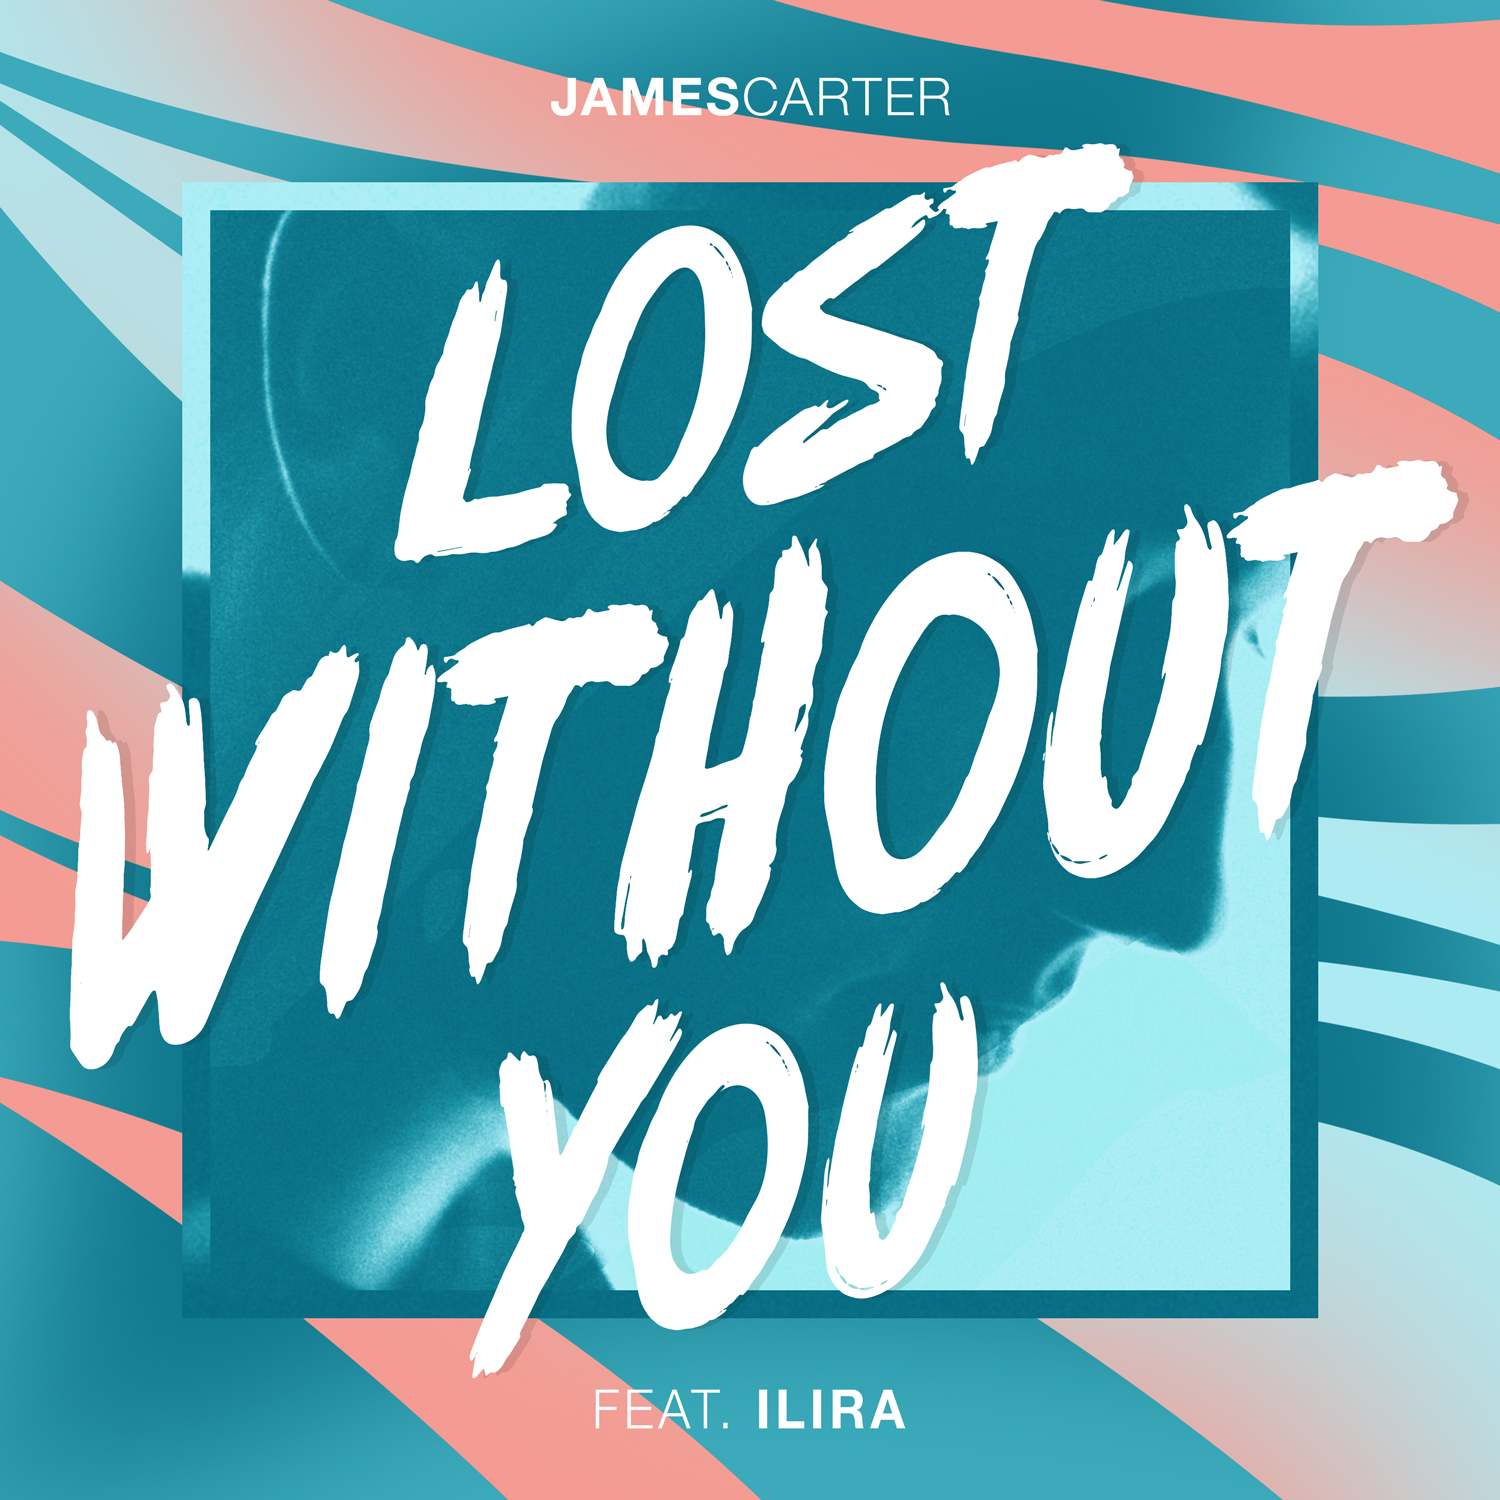 Artwork – James Carter - Lost Without You (feat. ILIRA).jpg